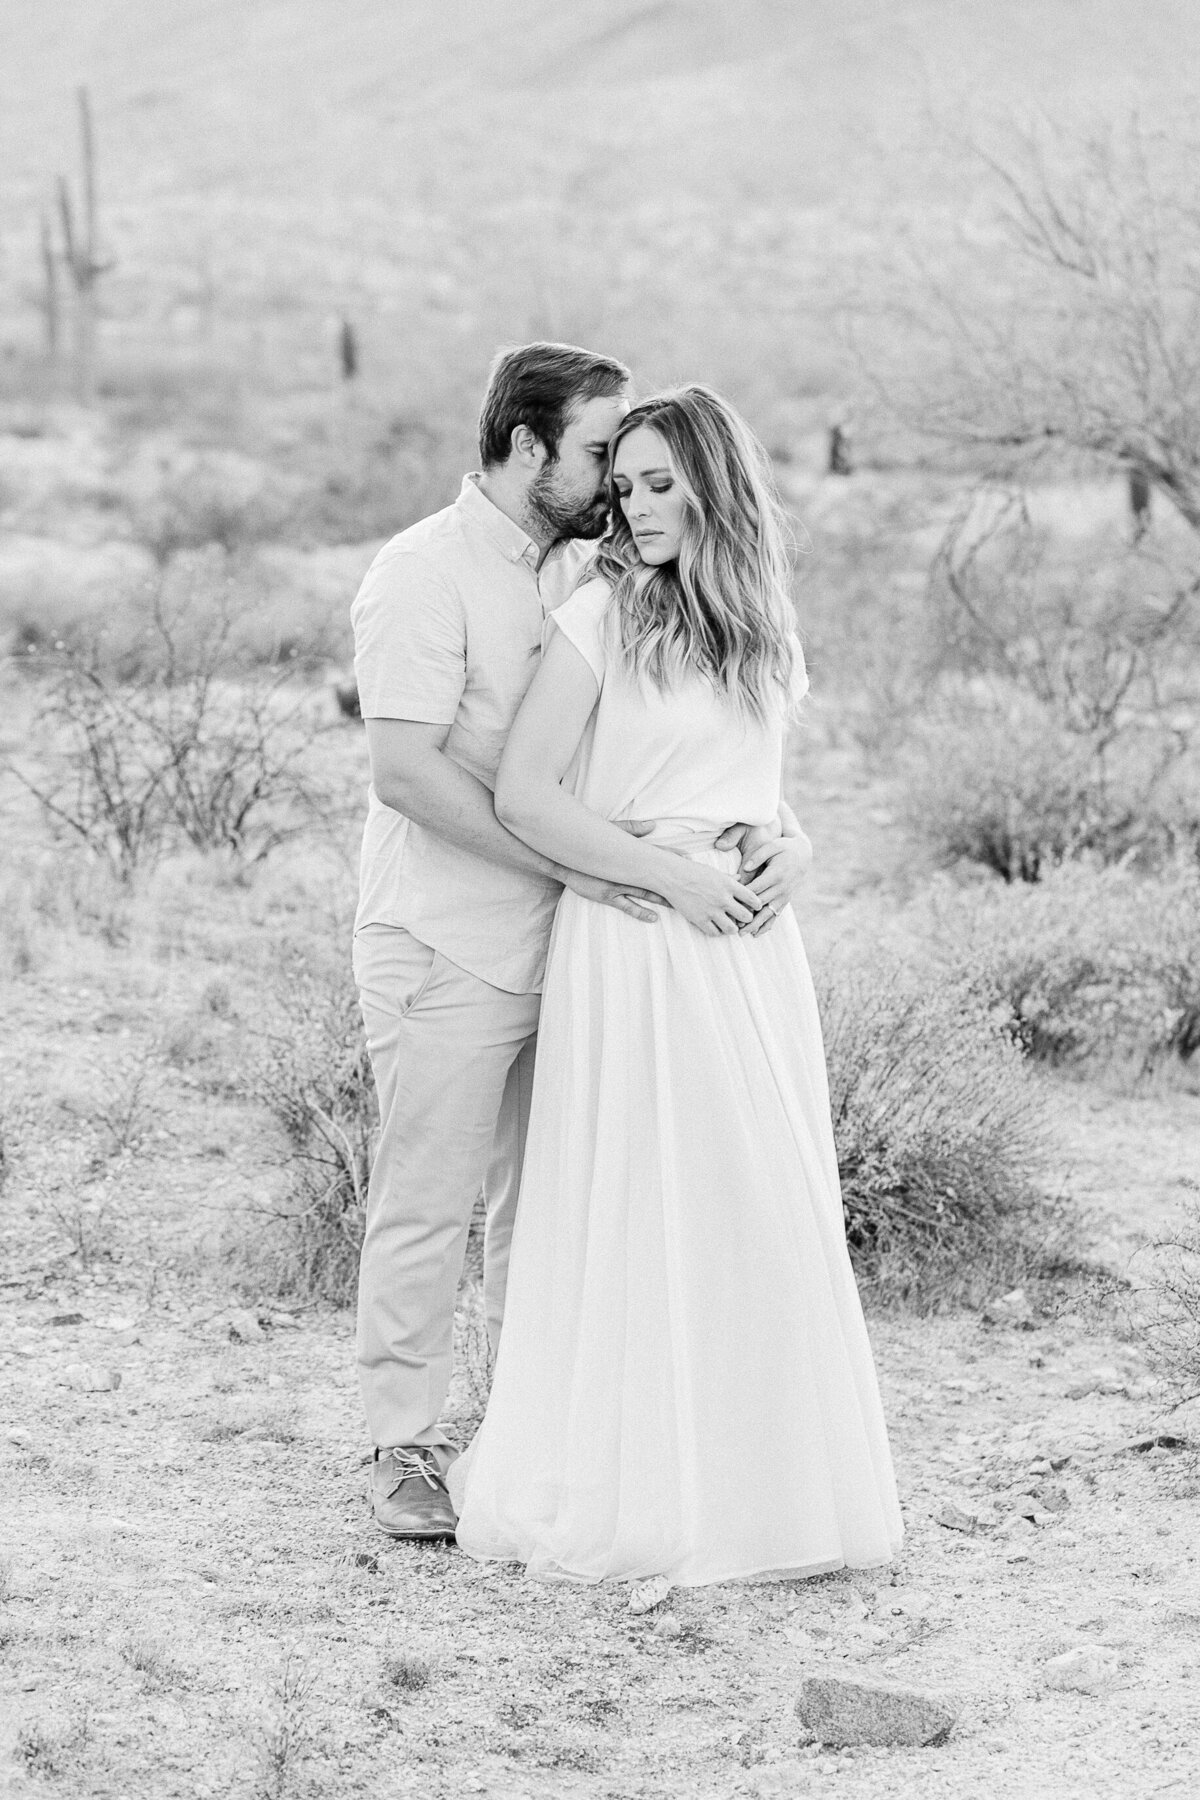 Engagement Photos At South Mountain In Phoenix AZ - Scottsdale Wedding Photographer - Atlas Rose Photography AZ02